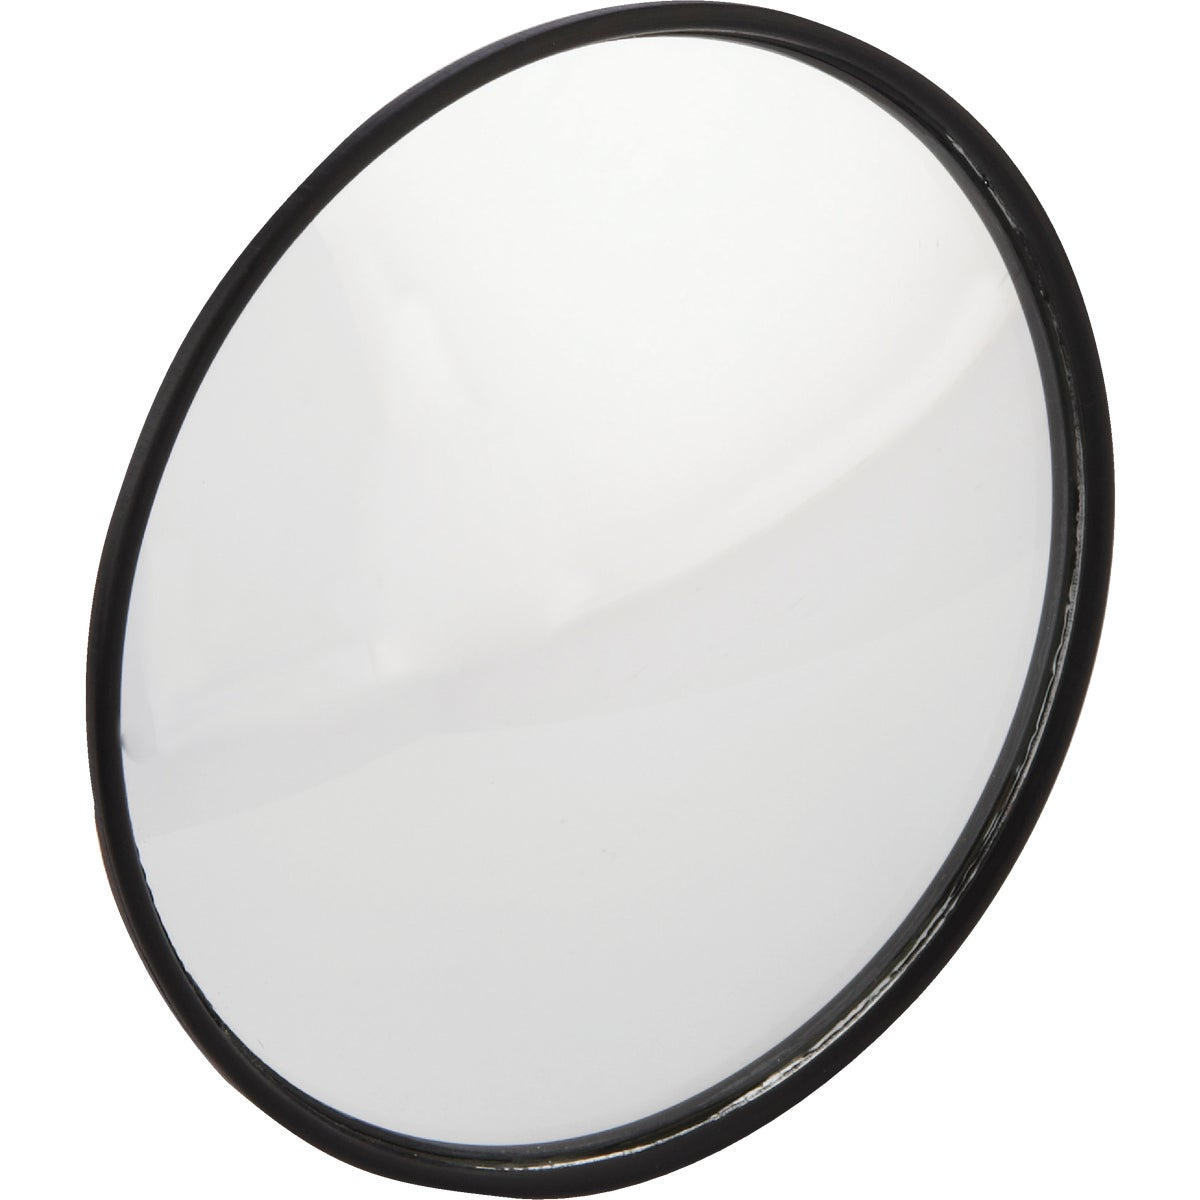 "3""WIDE ANGLE SPOT MIRROR"